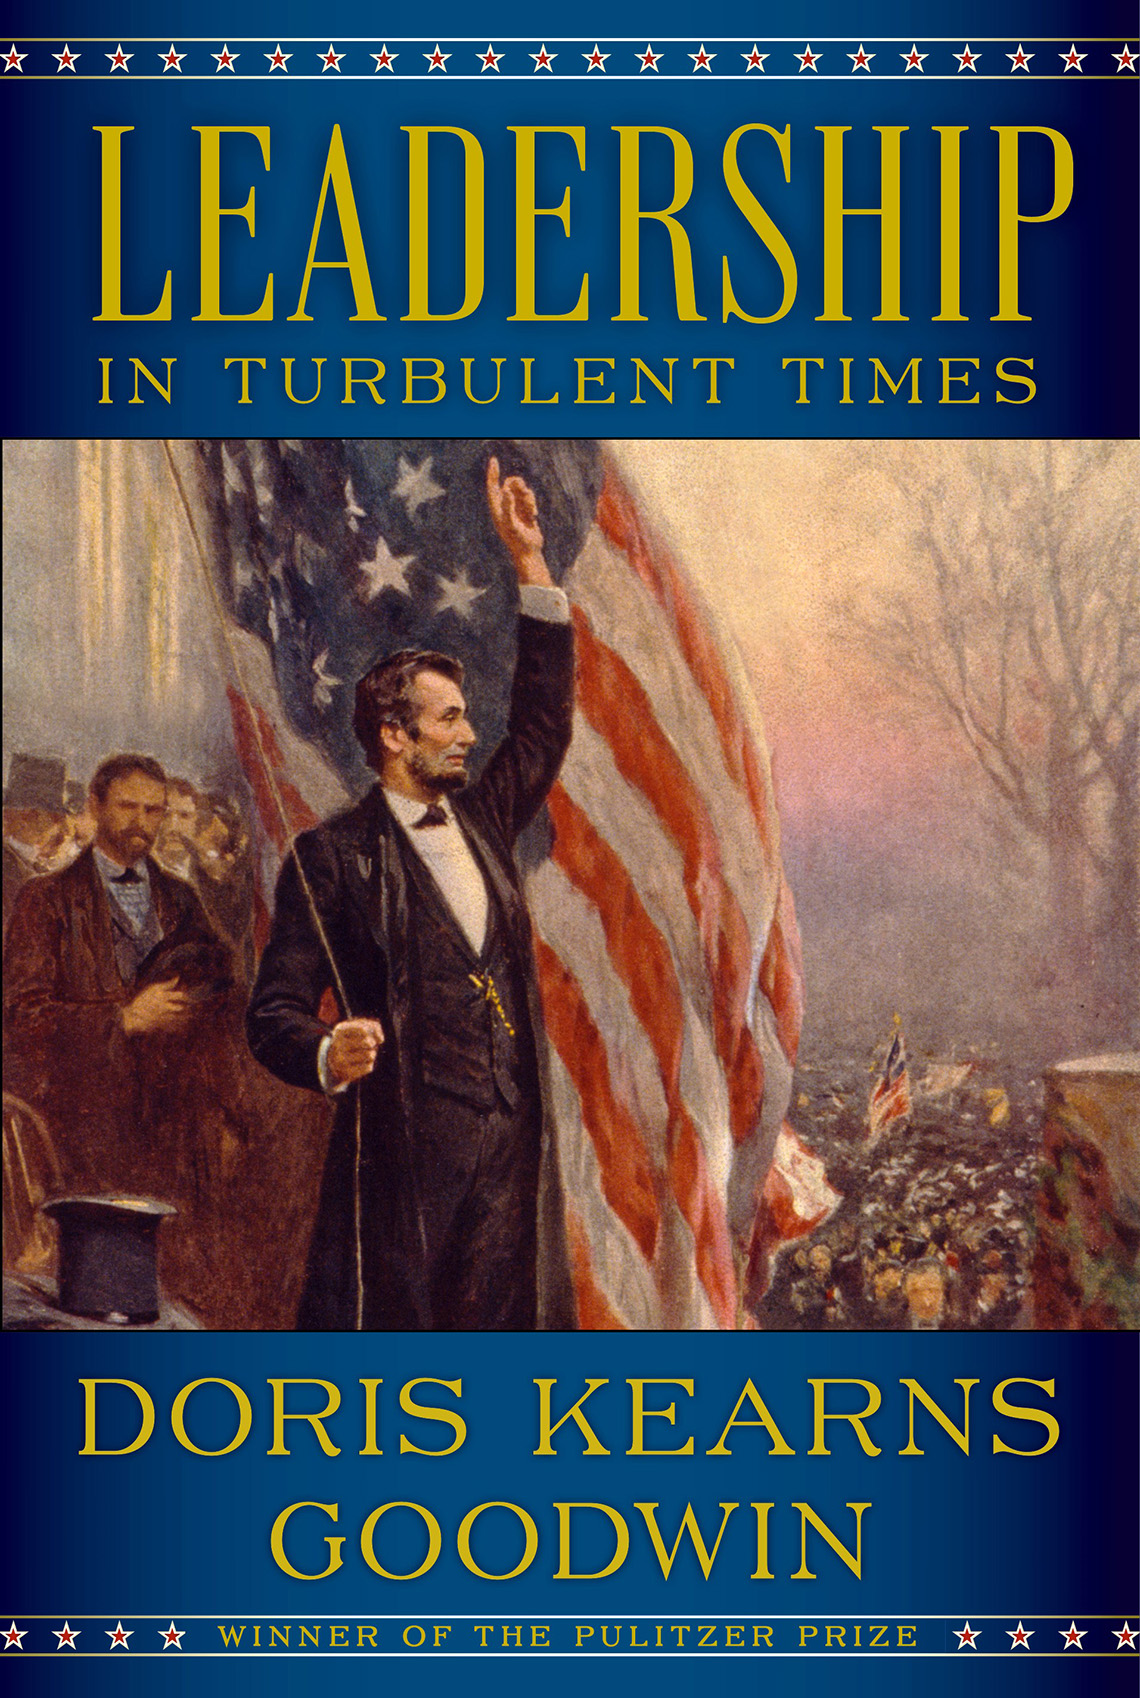 """Book cover, text reads """"Leadership in Turbulent Times, Doris Kearns Goodwin"""""""